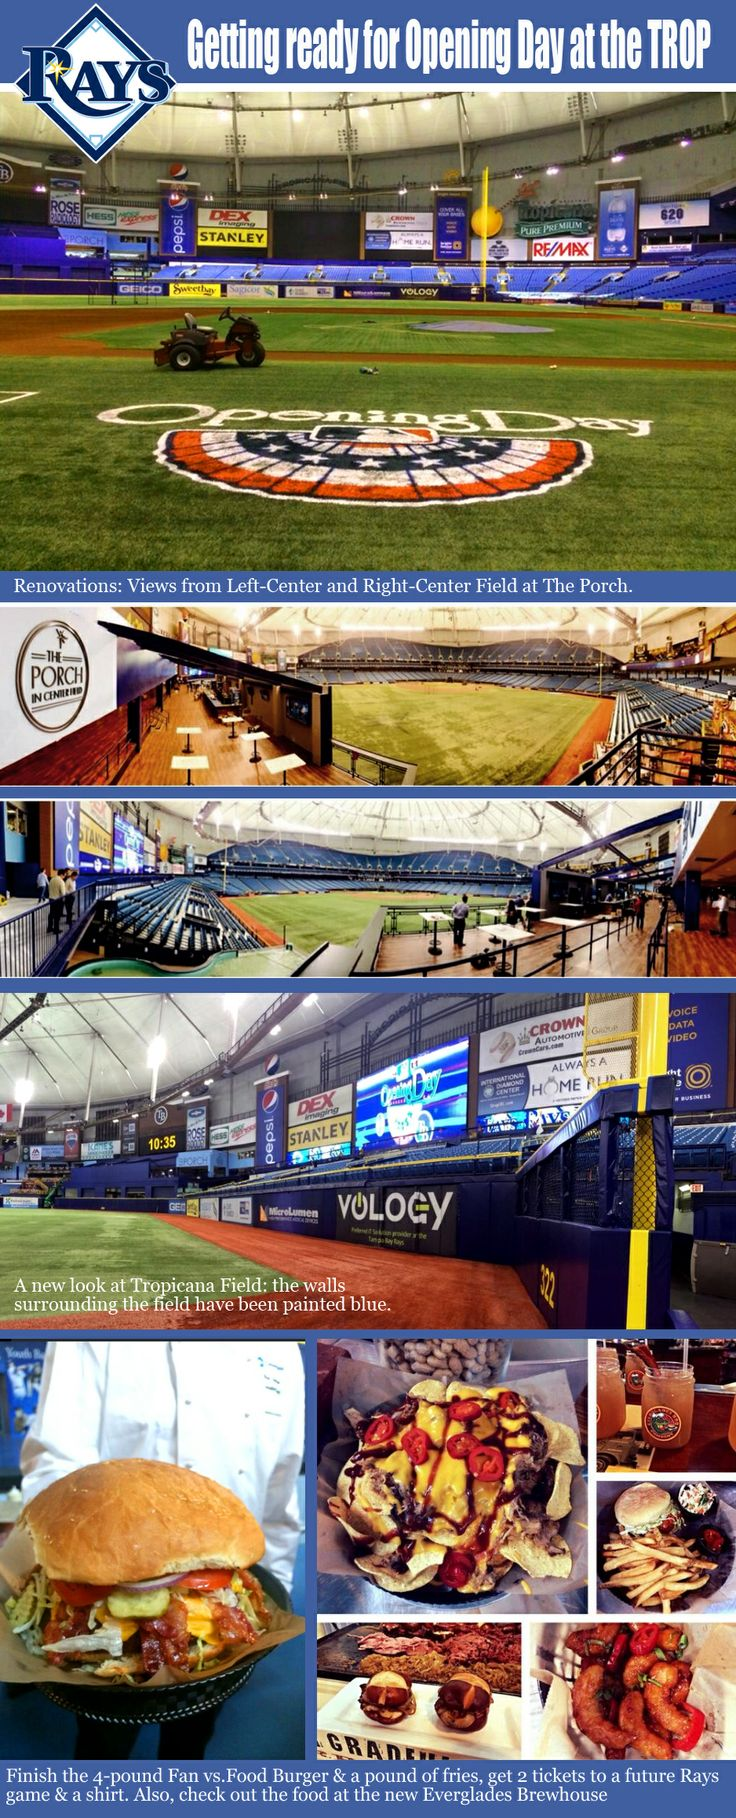 Tampa Bay Rays - Getting the Trop ready for opening day! YAY!